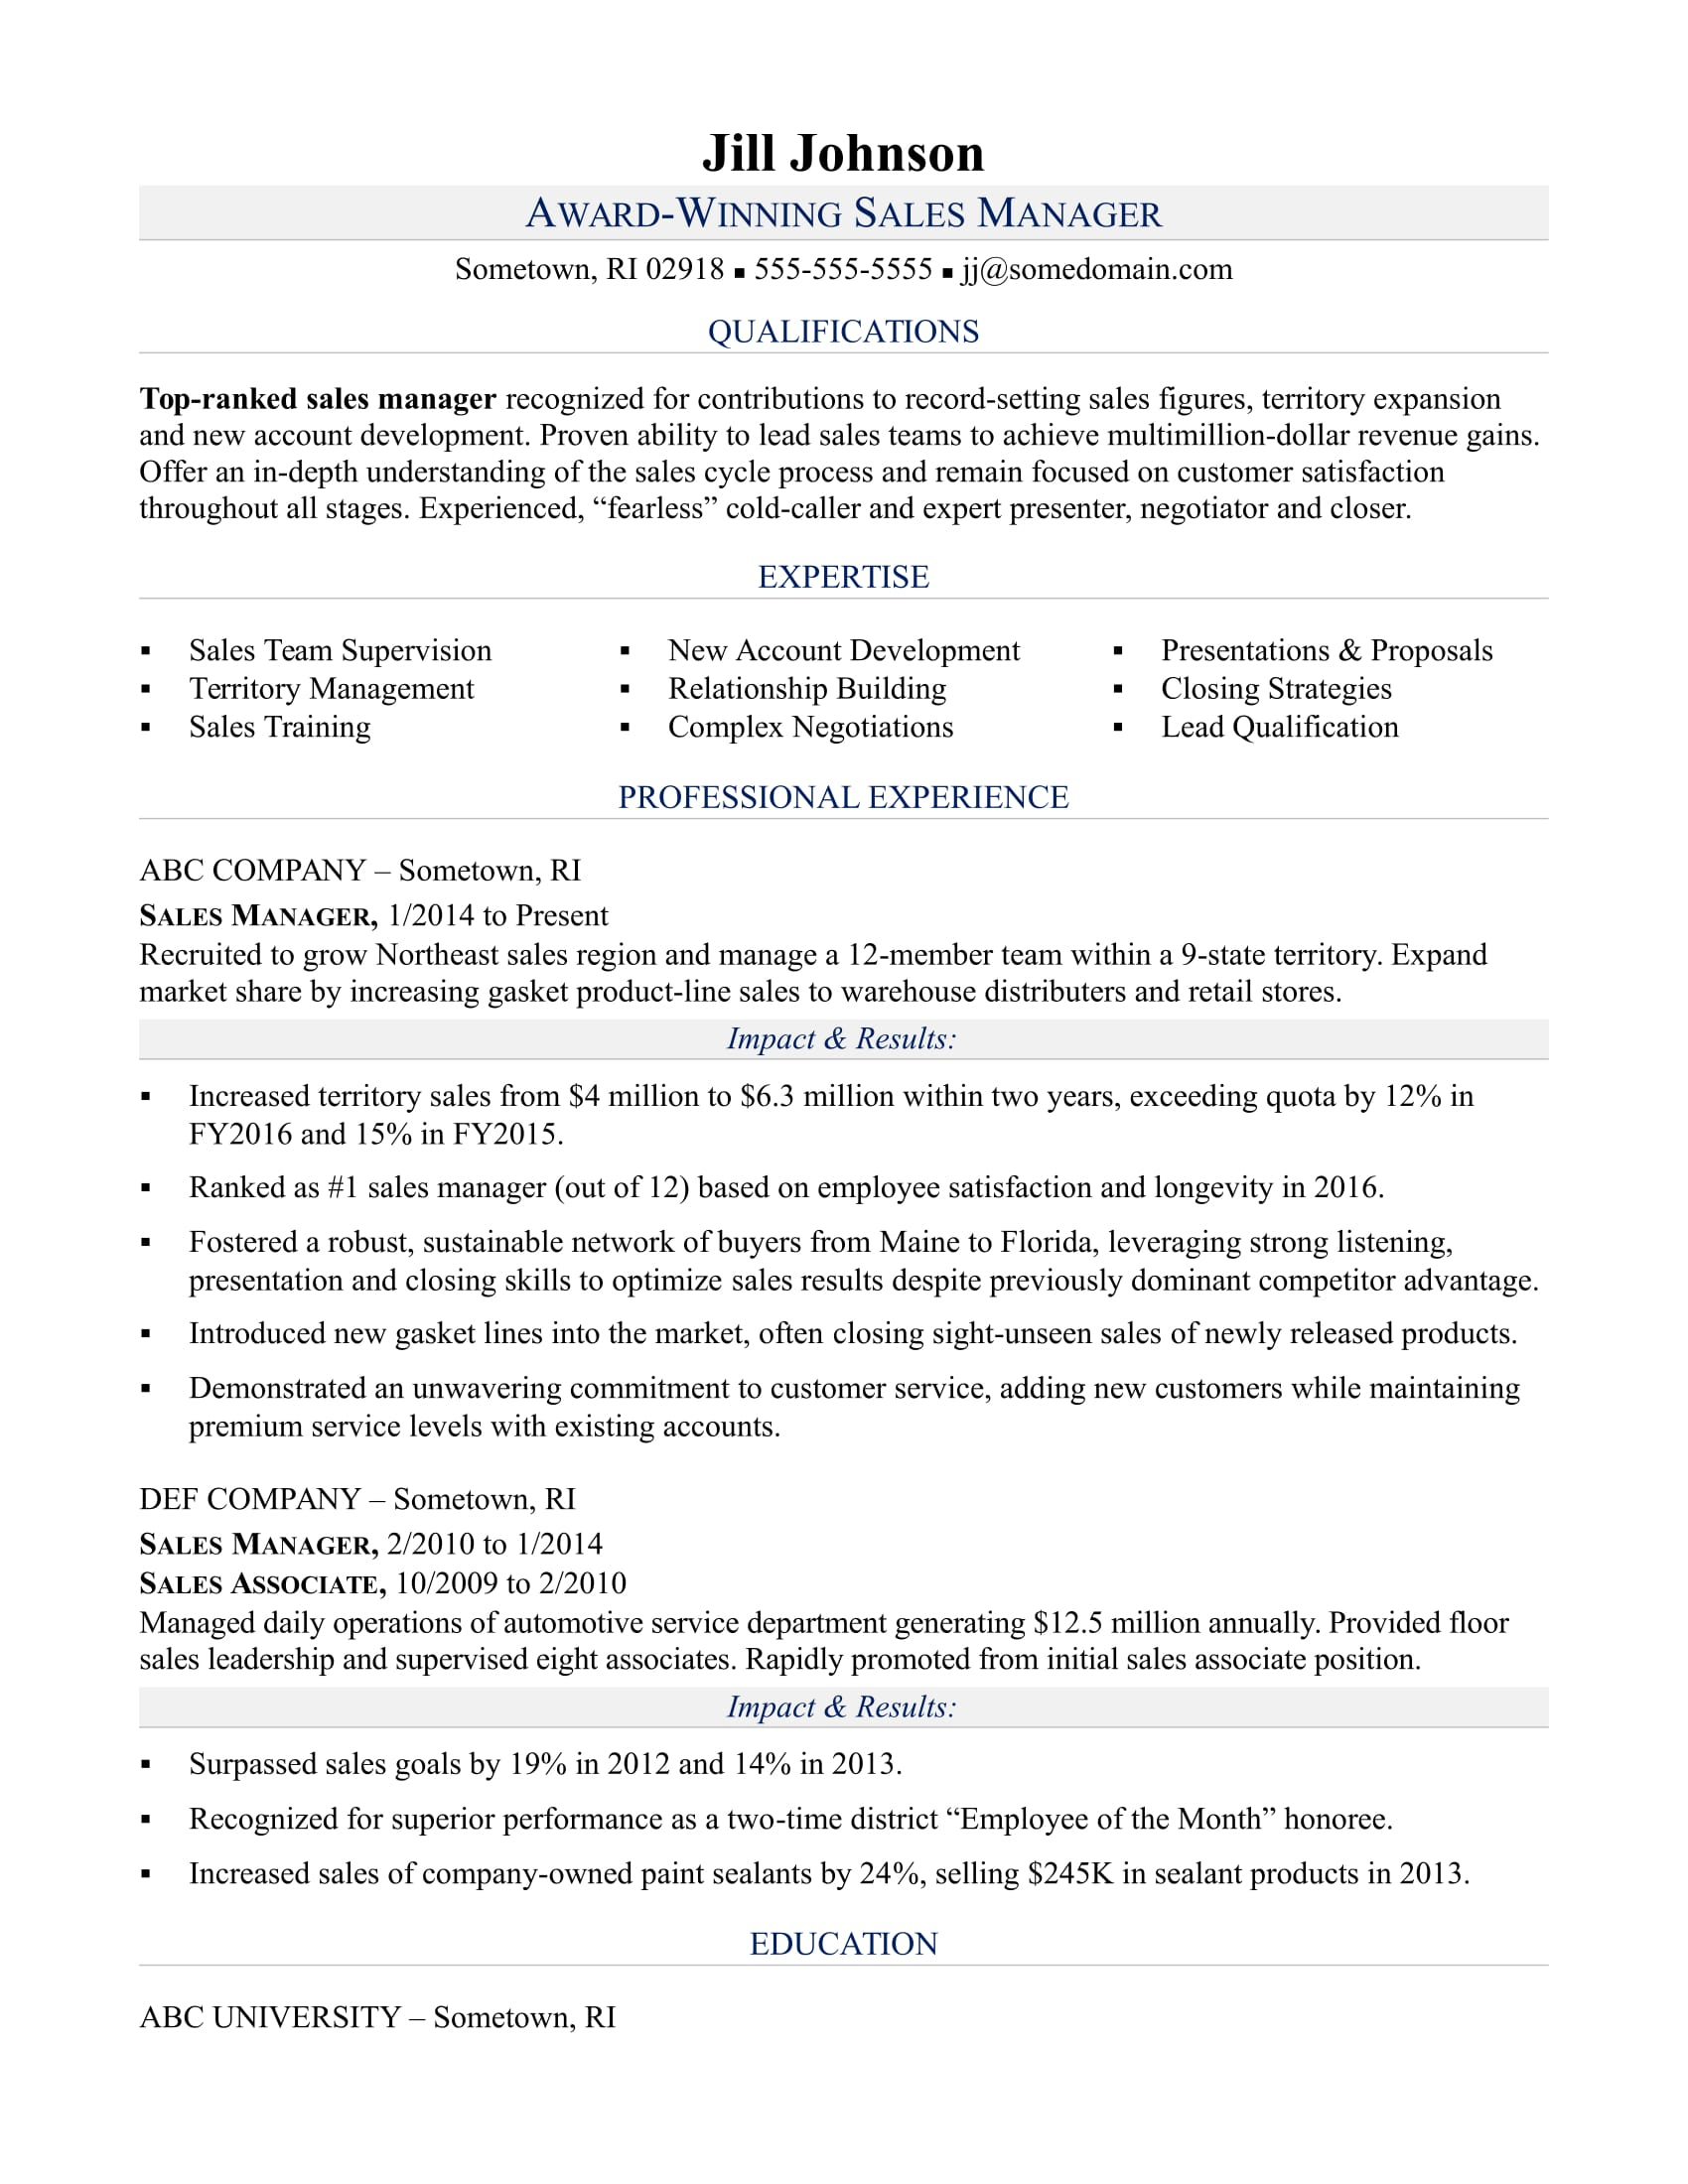 Sample Resume For A Sales Manager  Director Level Resume